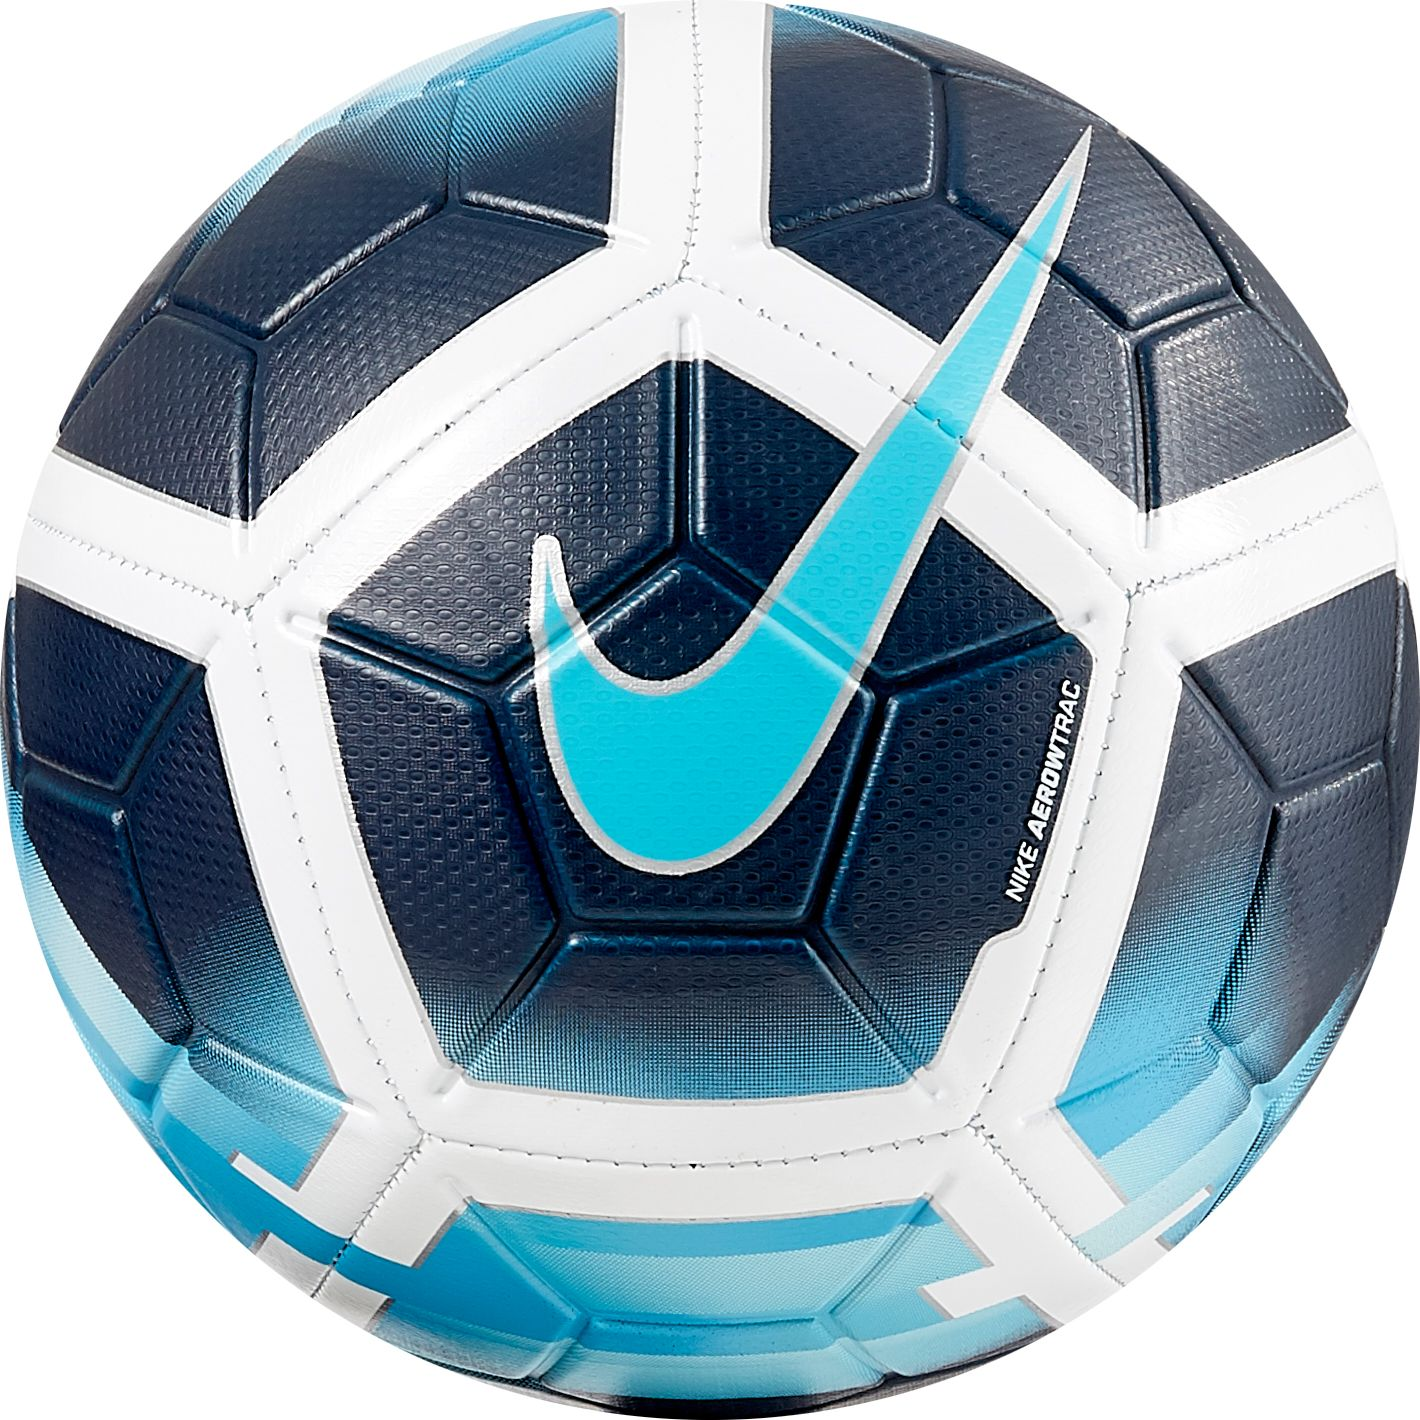 Image result for soccer ball | soccer balls | Soccer ...